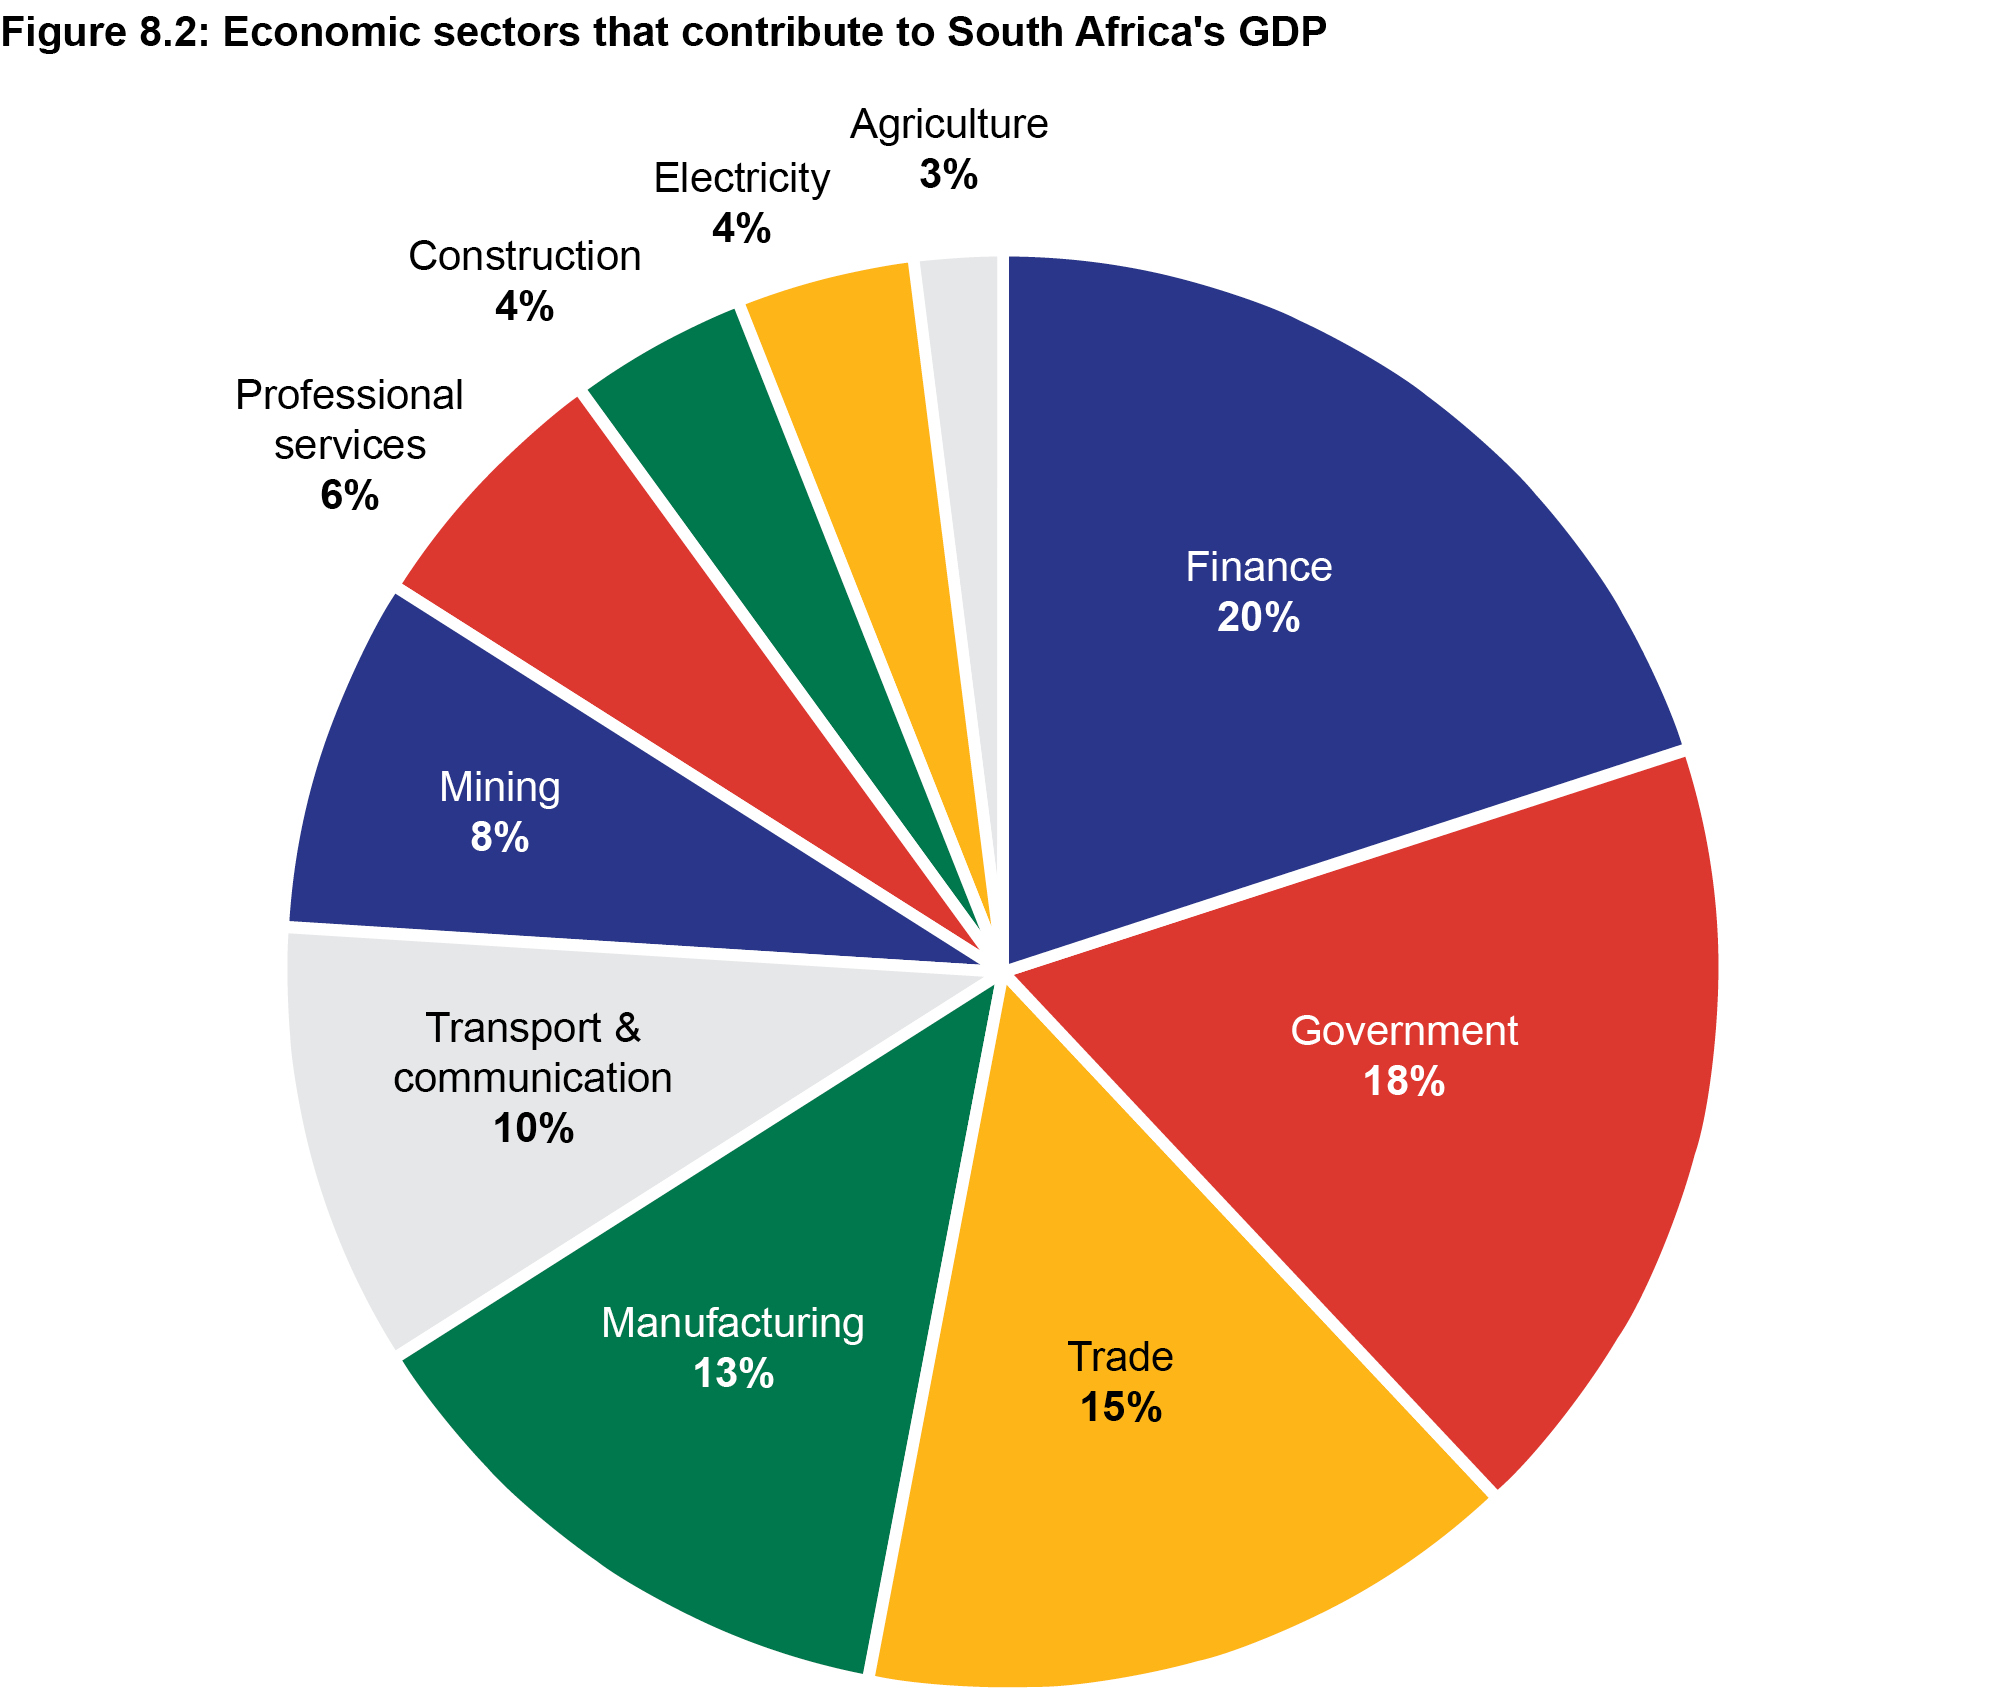 Economic sectors that contribute to South Africa's GDP